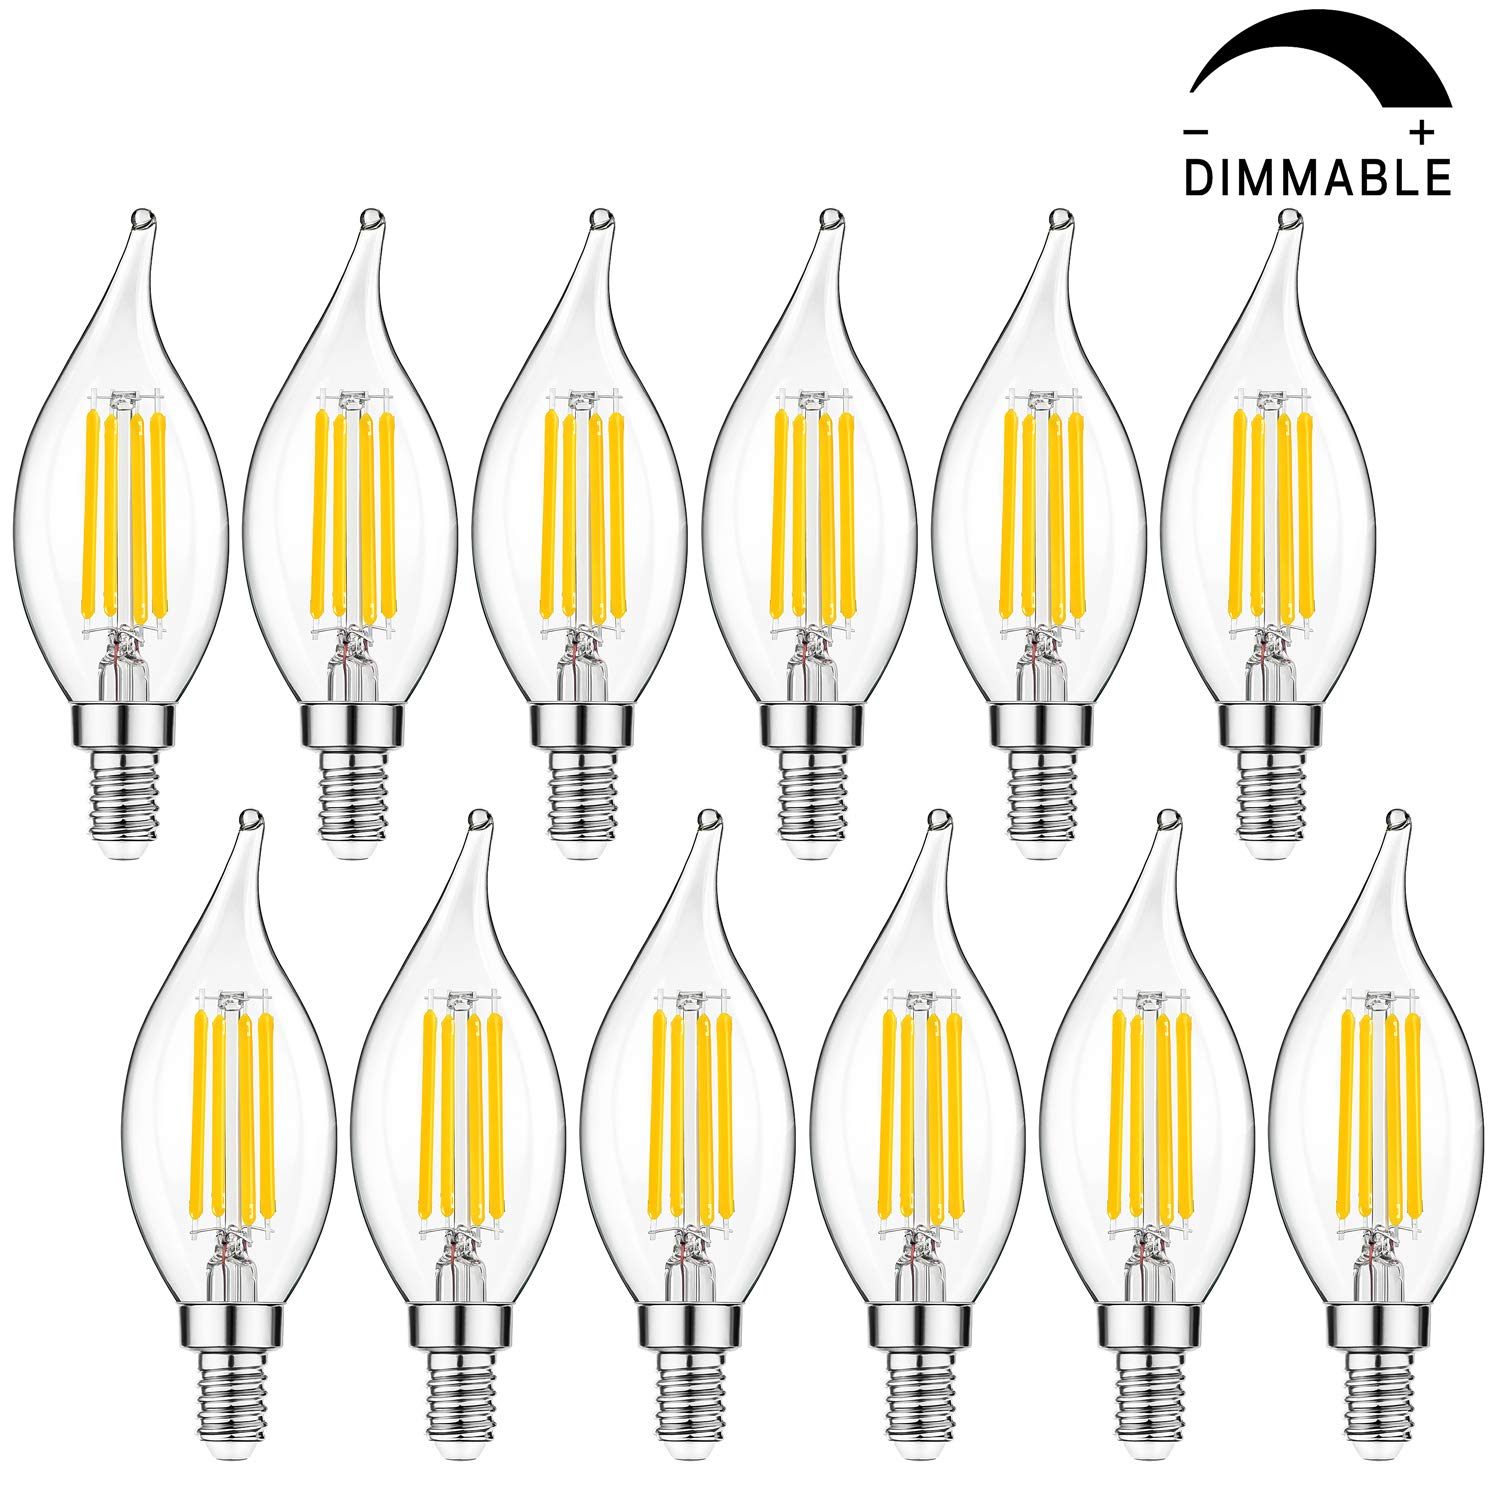 Dimmable E12 Candelabra LED Bulbs 40W Equivalent, 2700K Warm White, 4W Filament LED Chandelier Light Bulbs, CA11 Vintage Edison Clear Candle Bulbs, 25000+ Hours Lifespan, No Flicker, Pack of 12